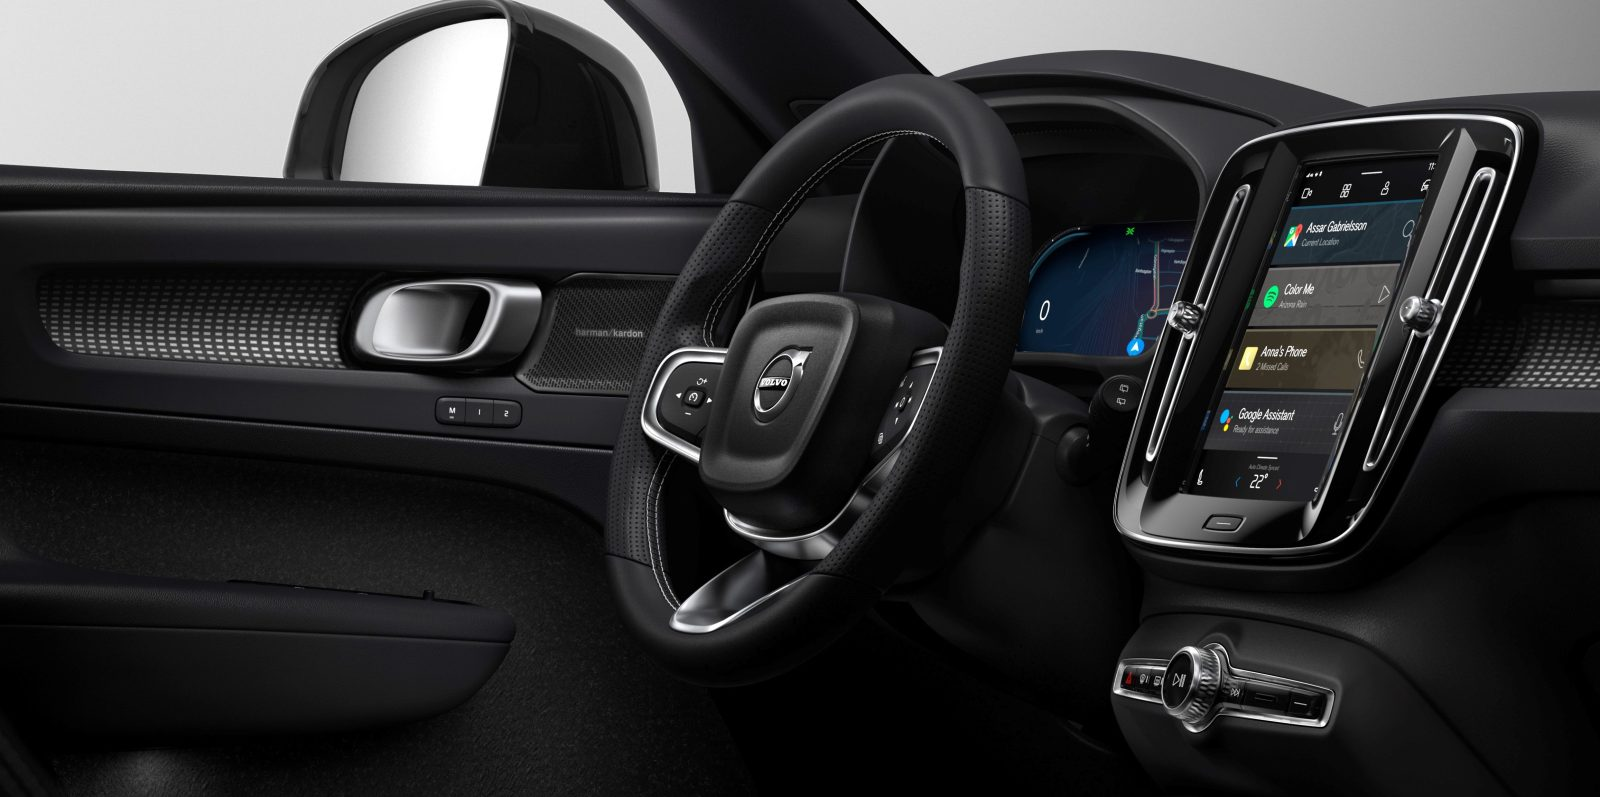 Volvo unveils electric XC40's infotainment system powered by Google's Android